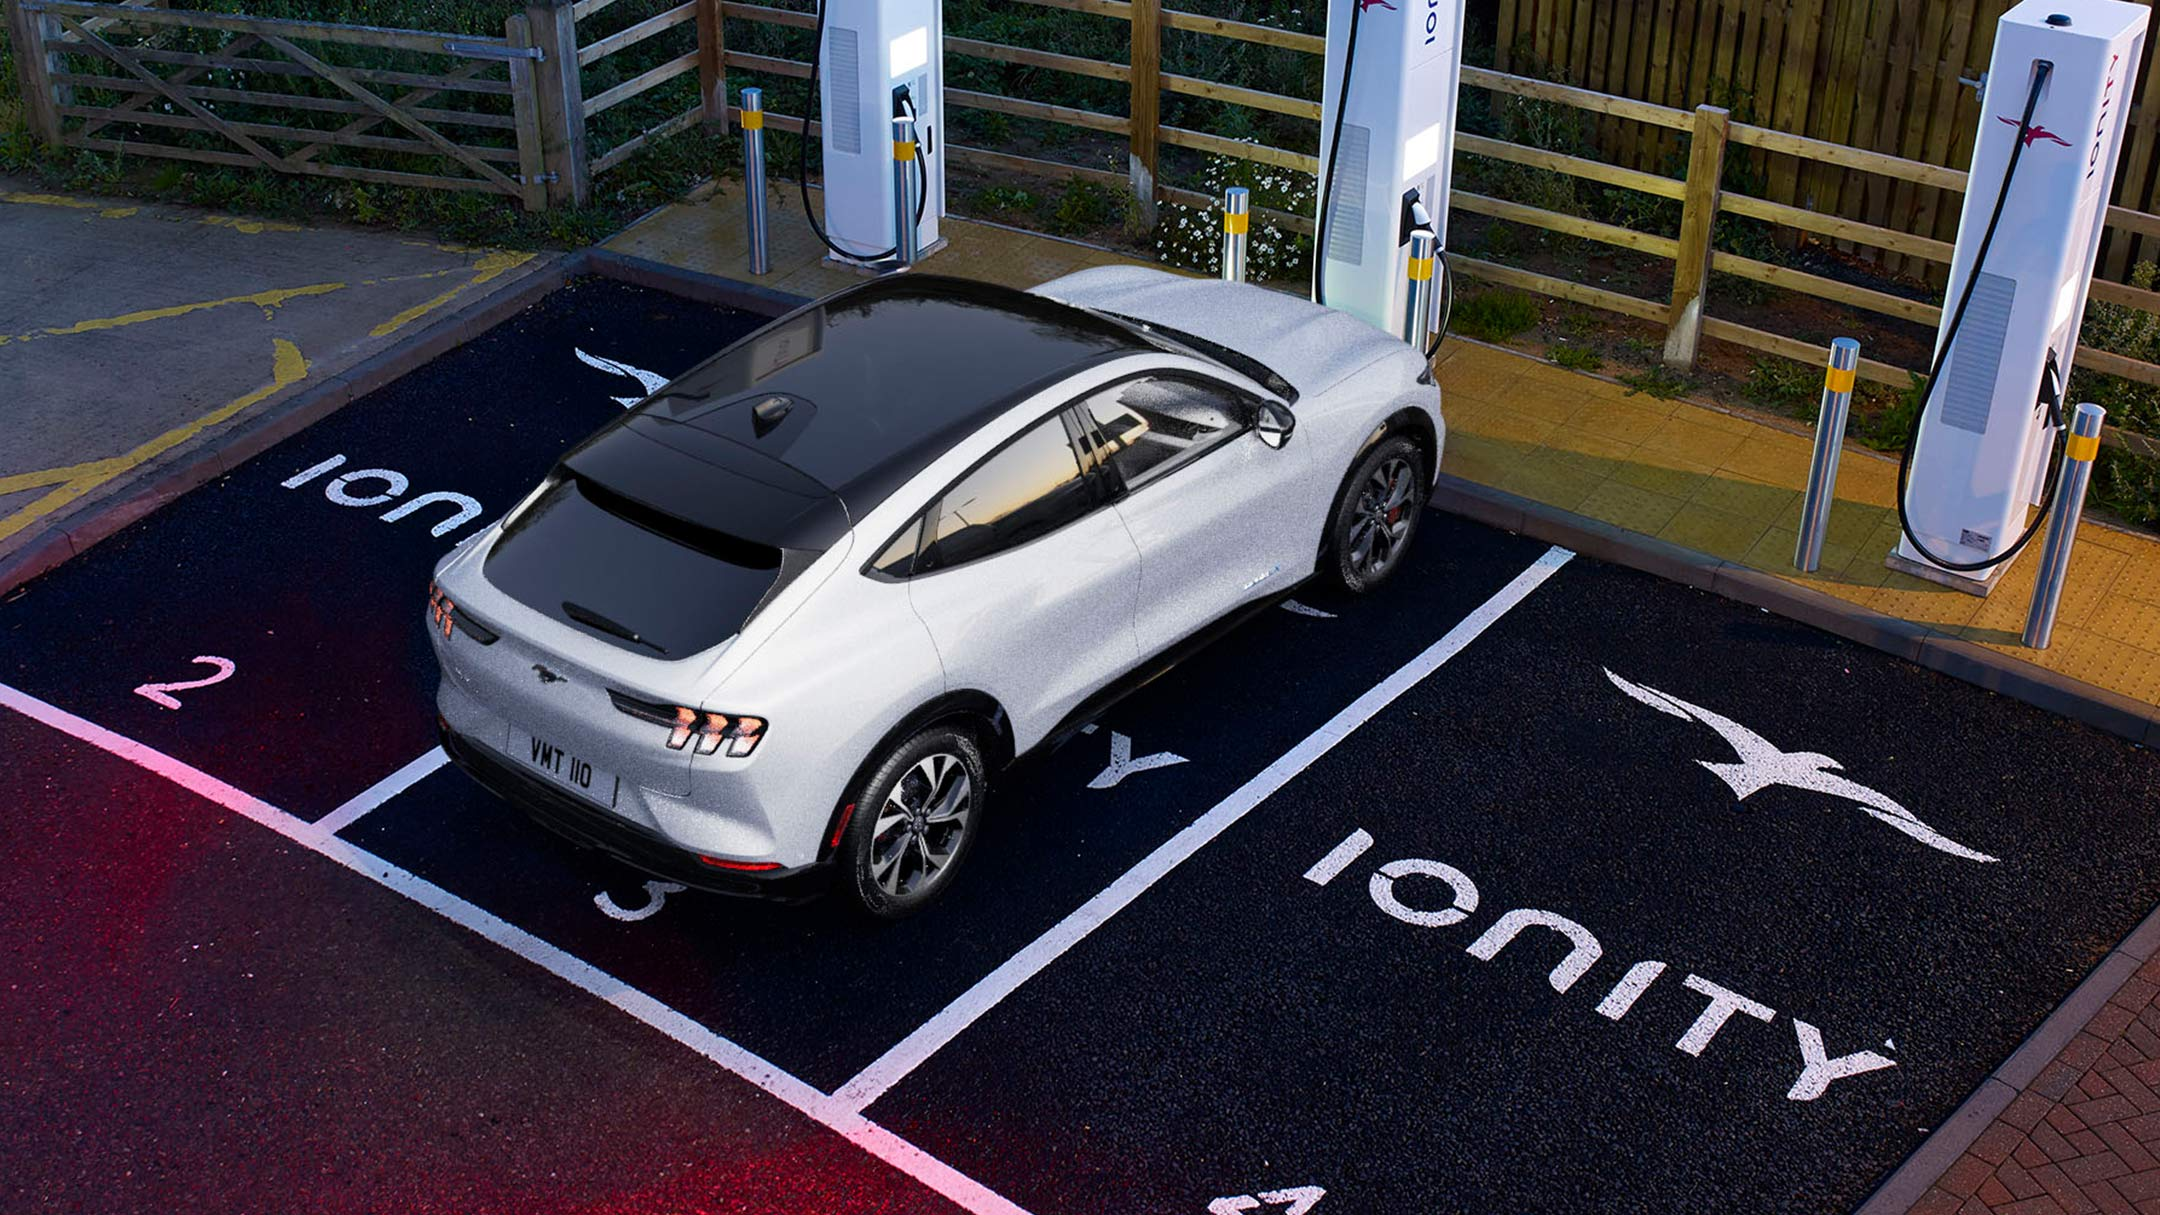 All-New Ford Mustang Mach-E parking and charging in a park